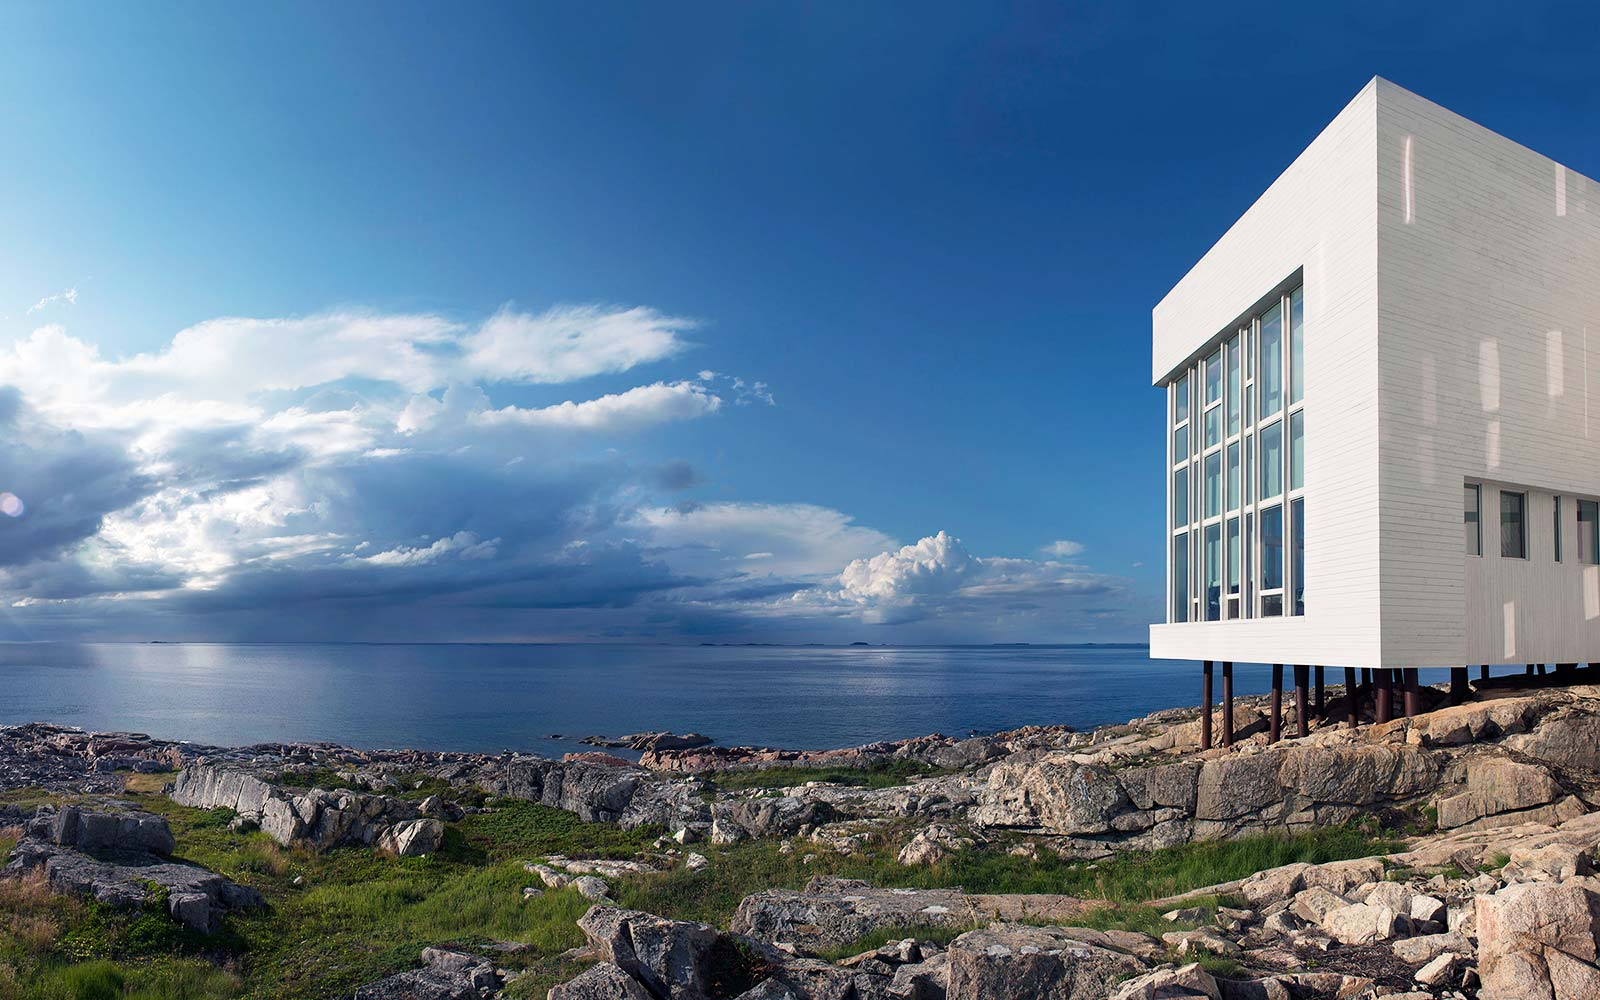 This Luxury Hotel on a Remote Canadian Island Is Like Staying at the End of the World